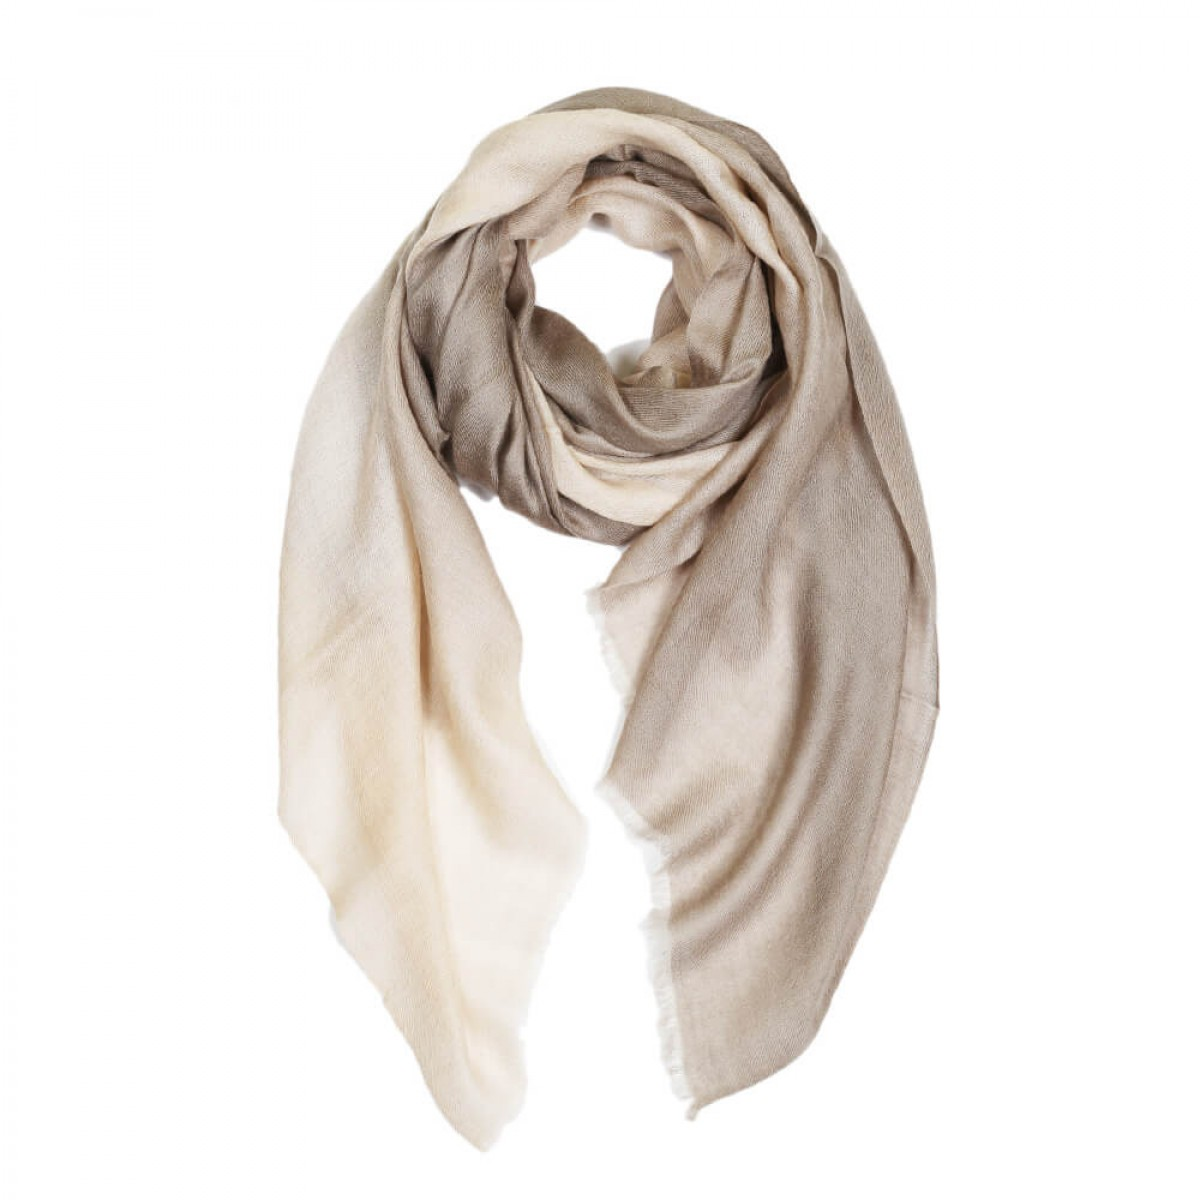 Ombre Pashmina Stole - Taupe